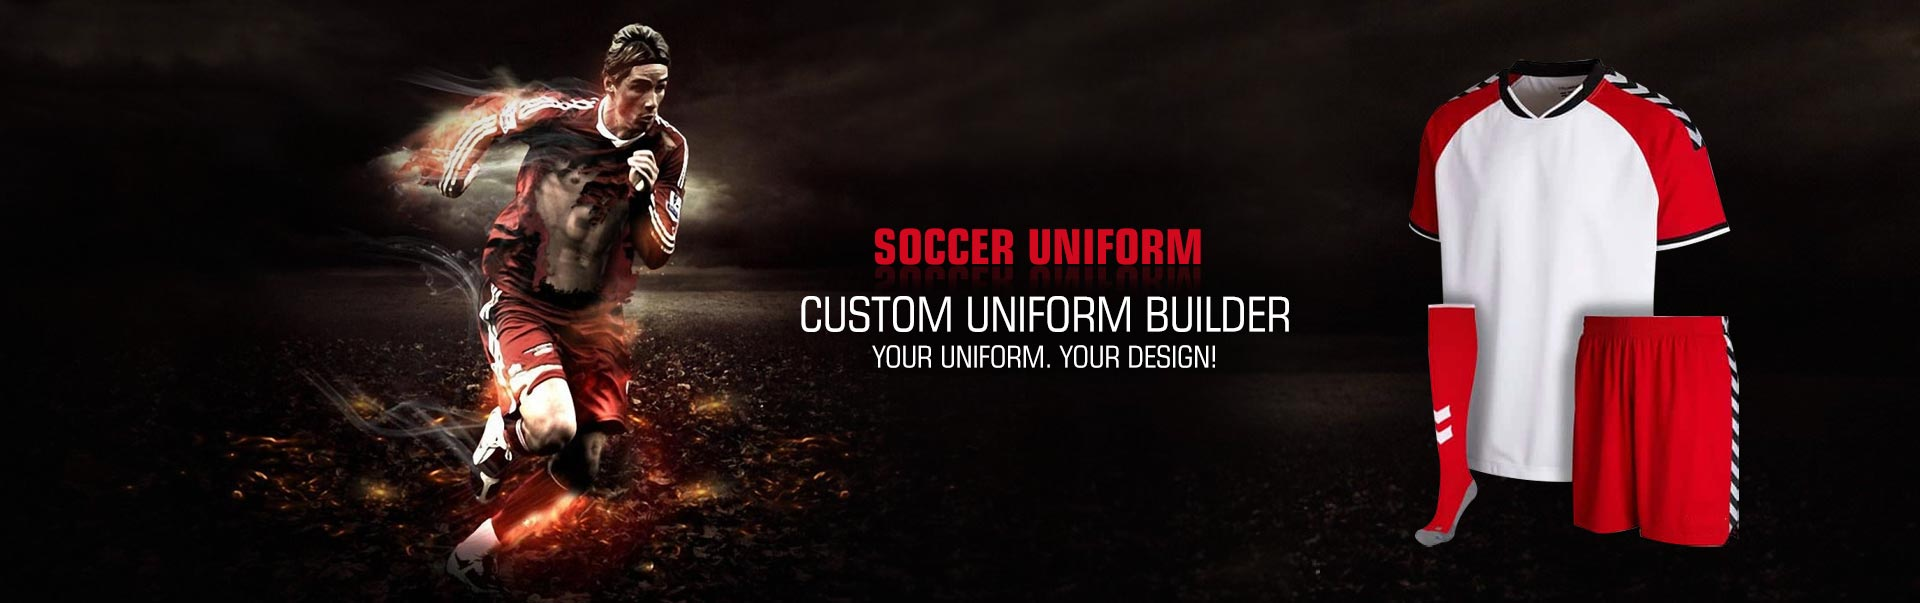 Soccer Uniform Wholesaler, Suppliers in High Point